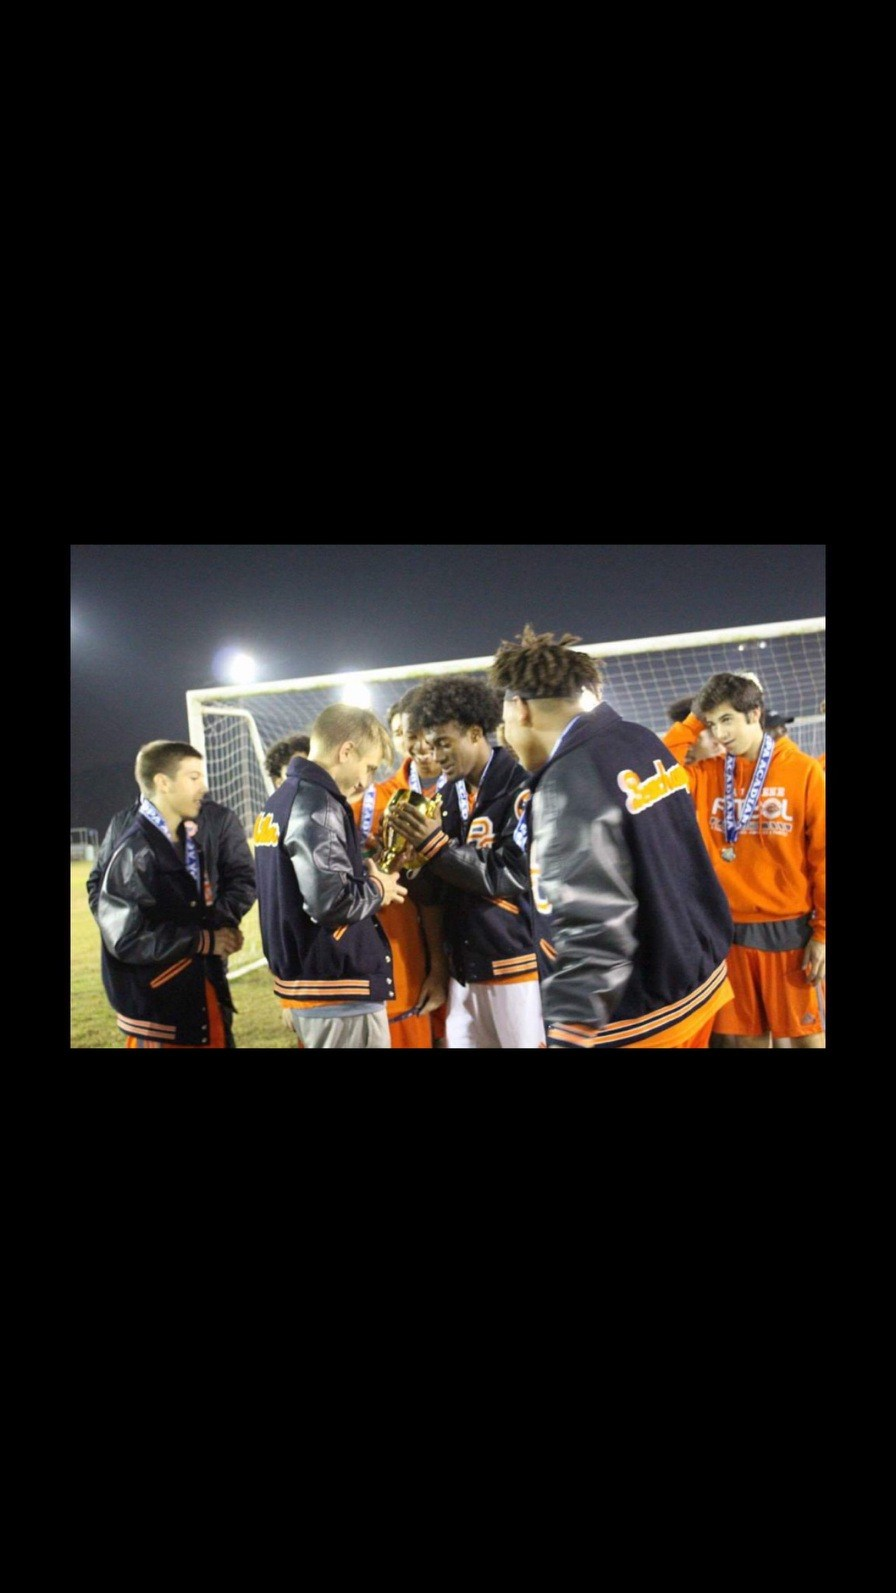 Boys Soccer team looks at the trophy they won